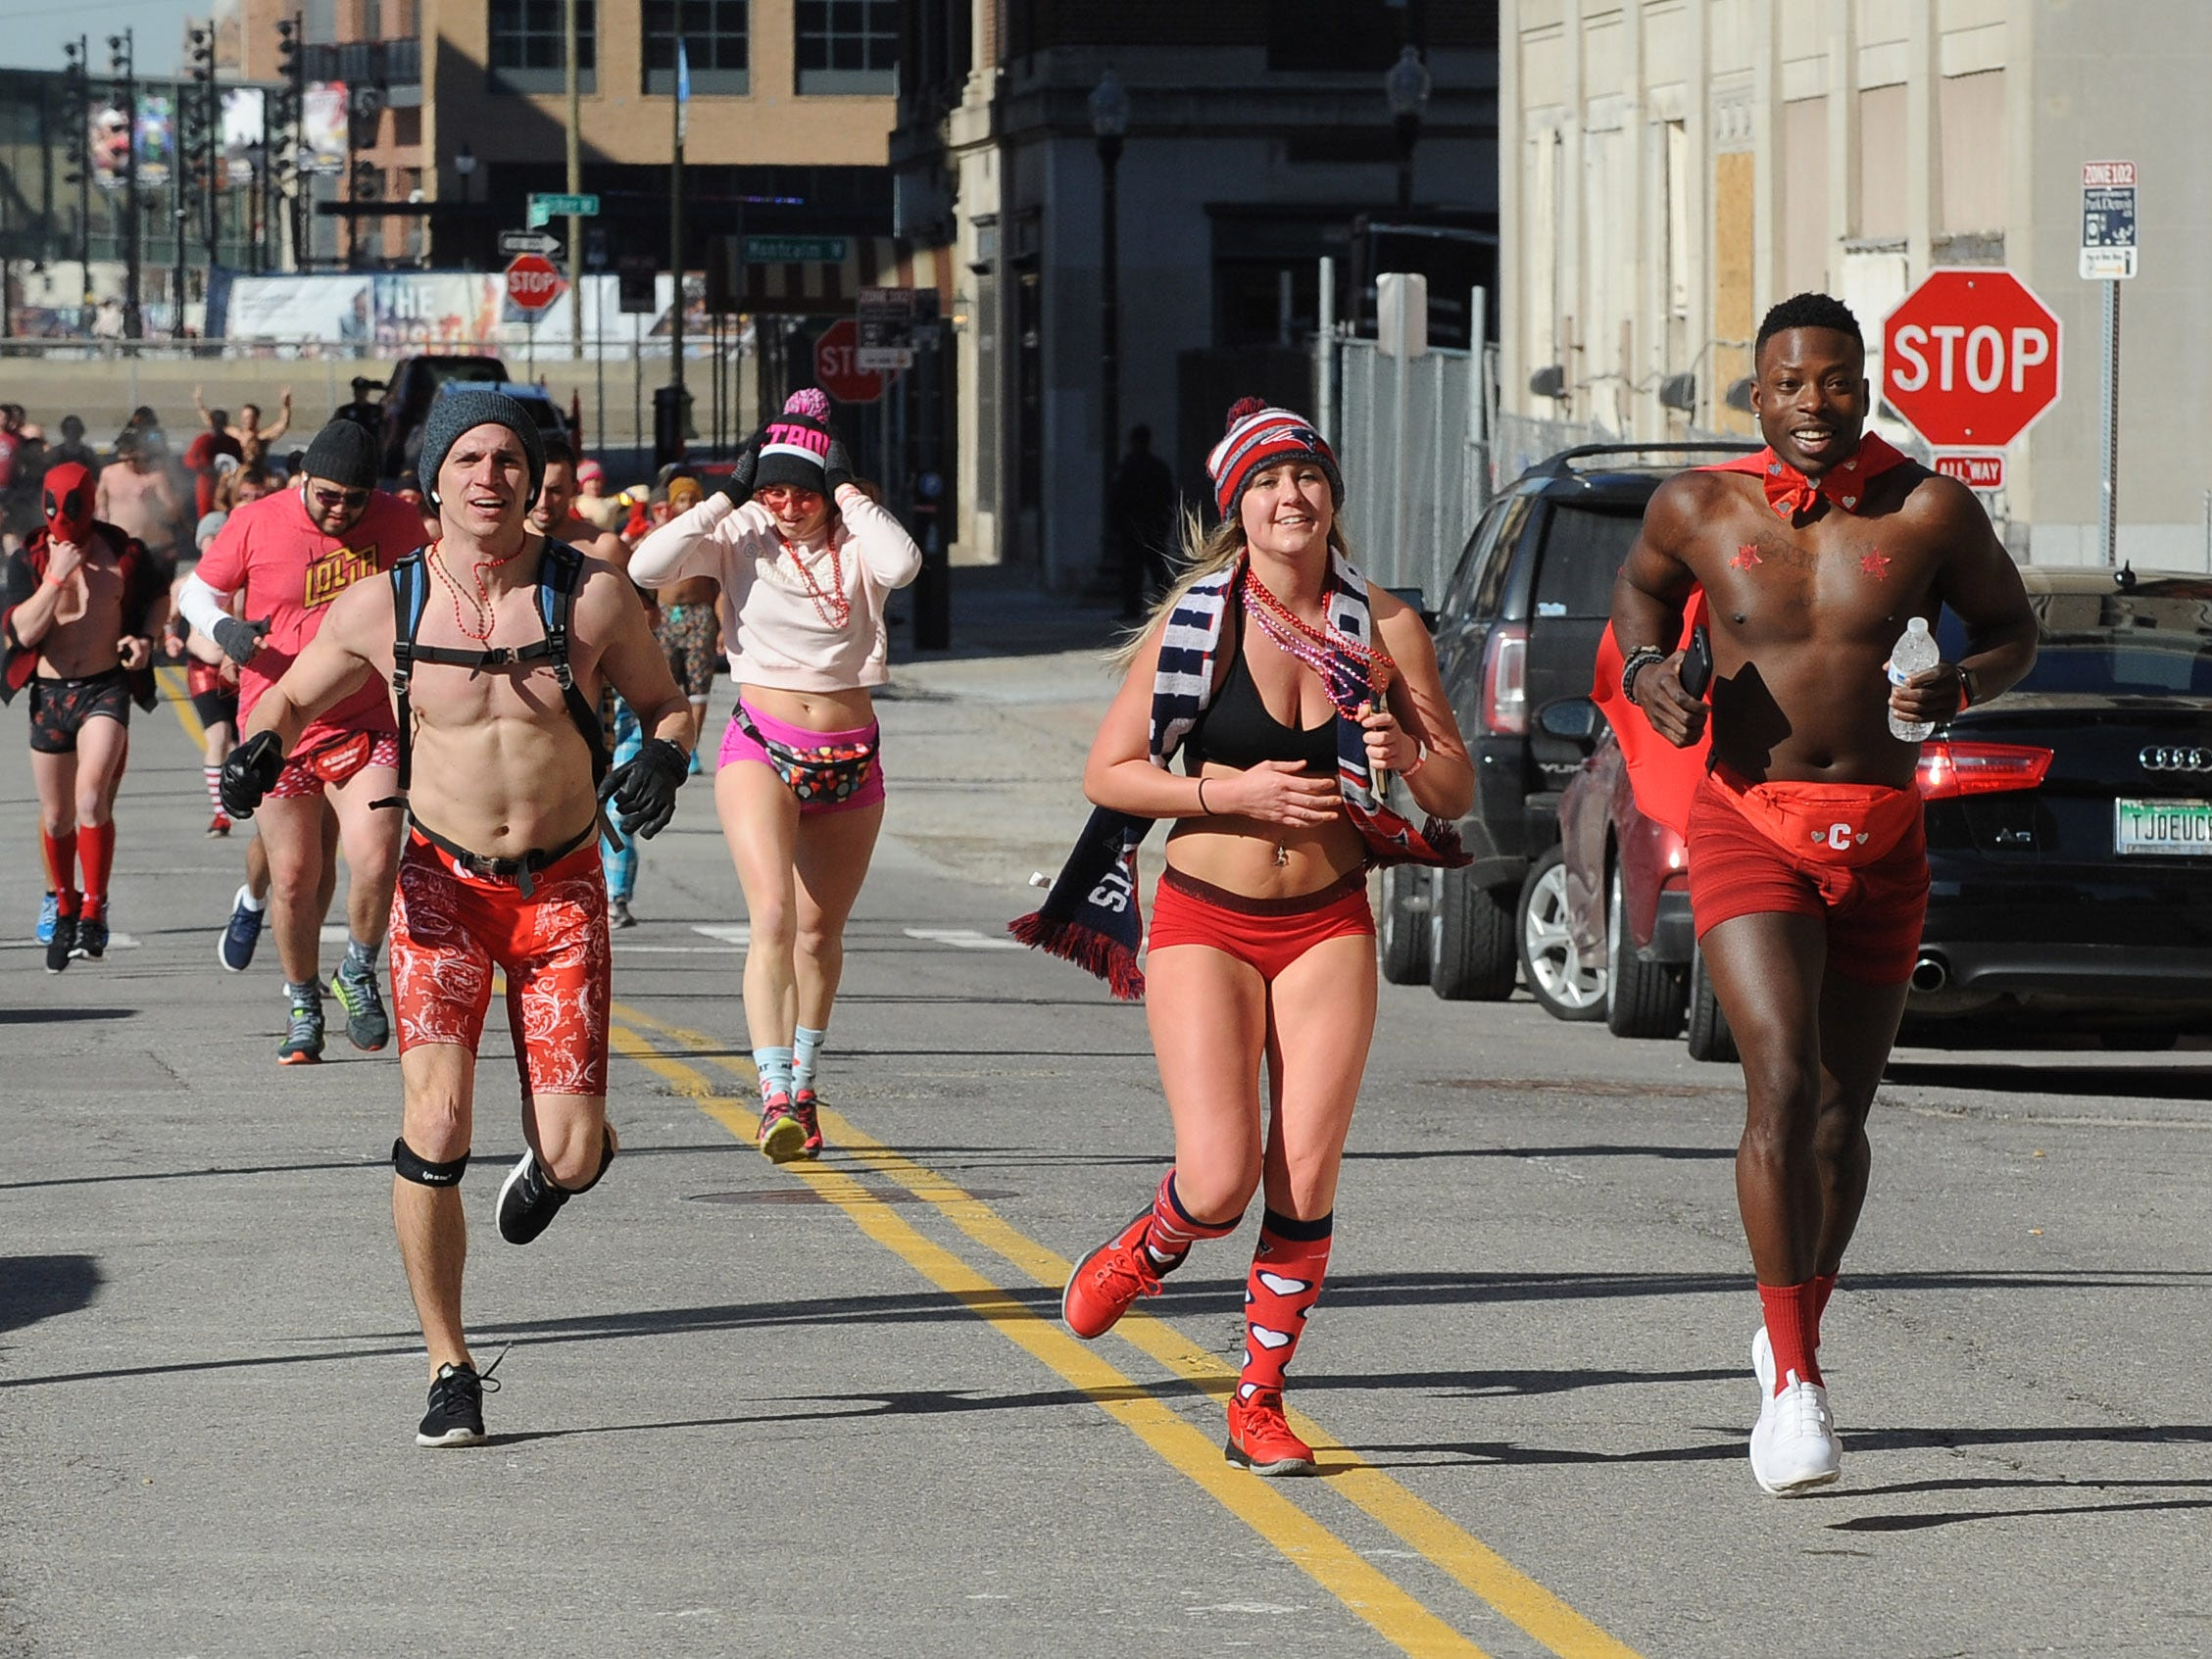 Participants hit the streets around the The Fillmore Detroit for Cupid's Undie Run, a fundraiser to find a cure for neurofibromatosis, on Saturday, February 9, 2019.